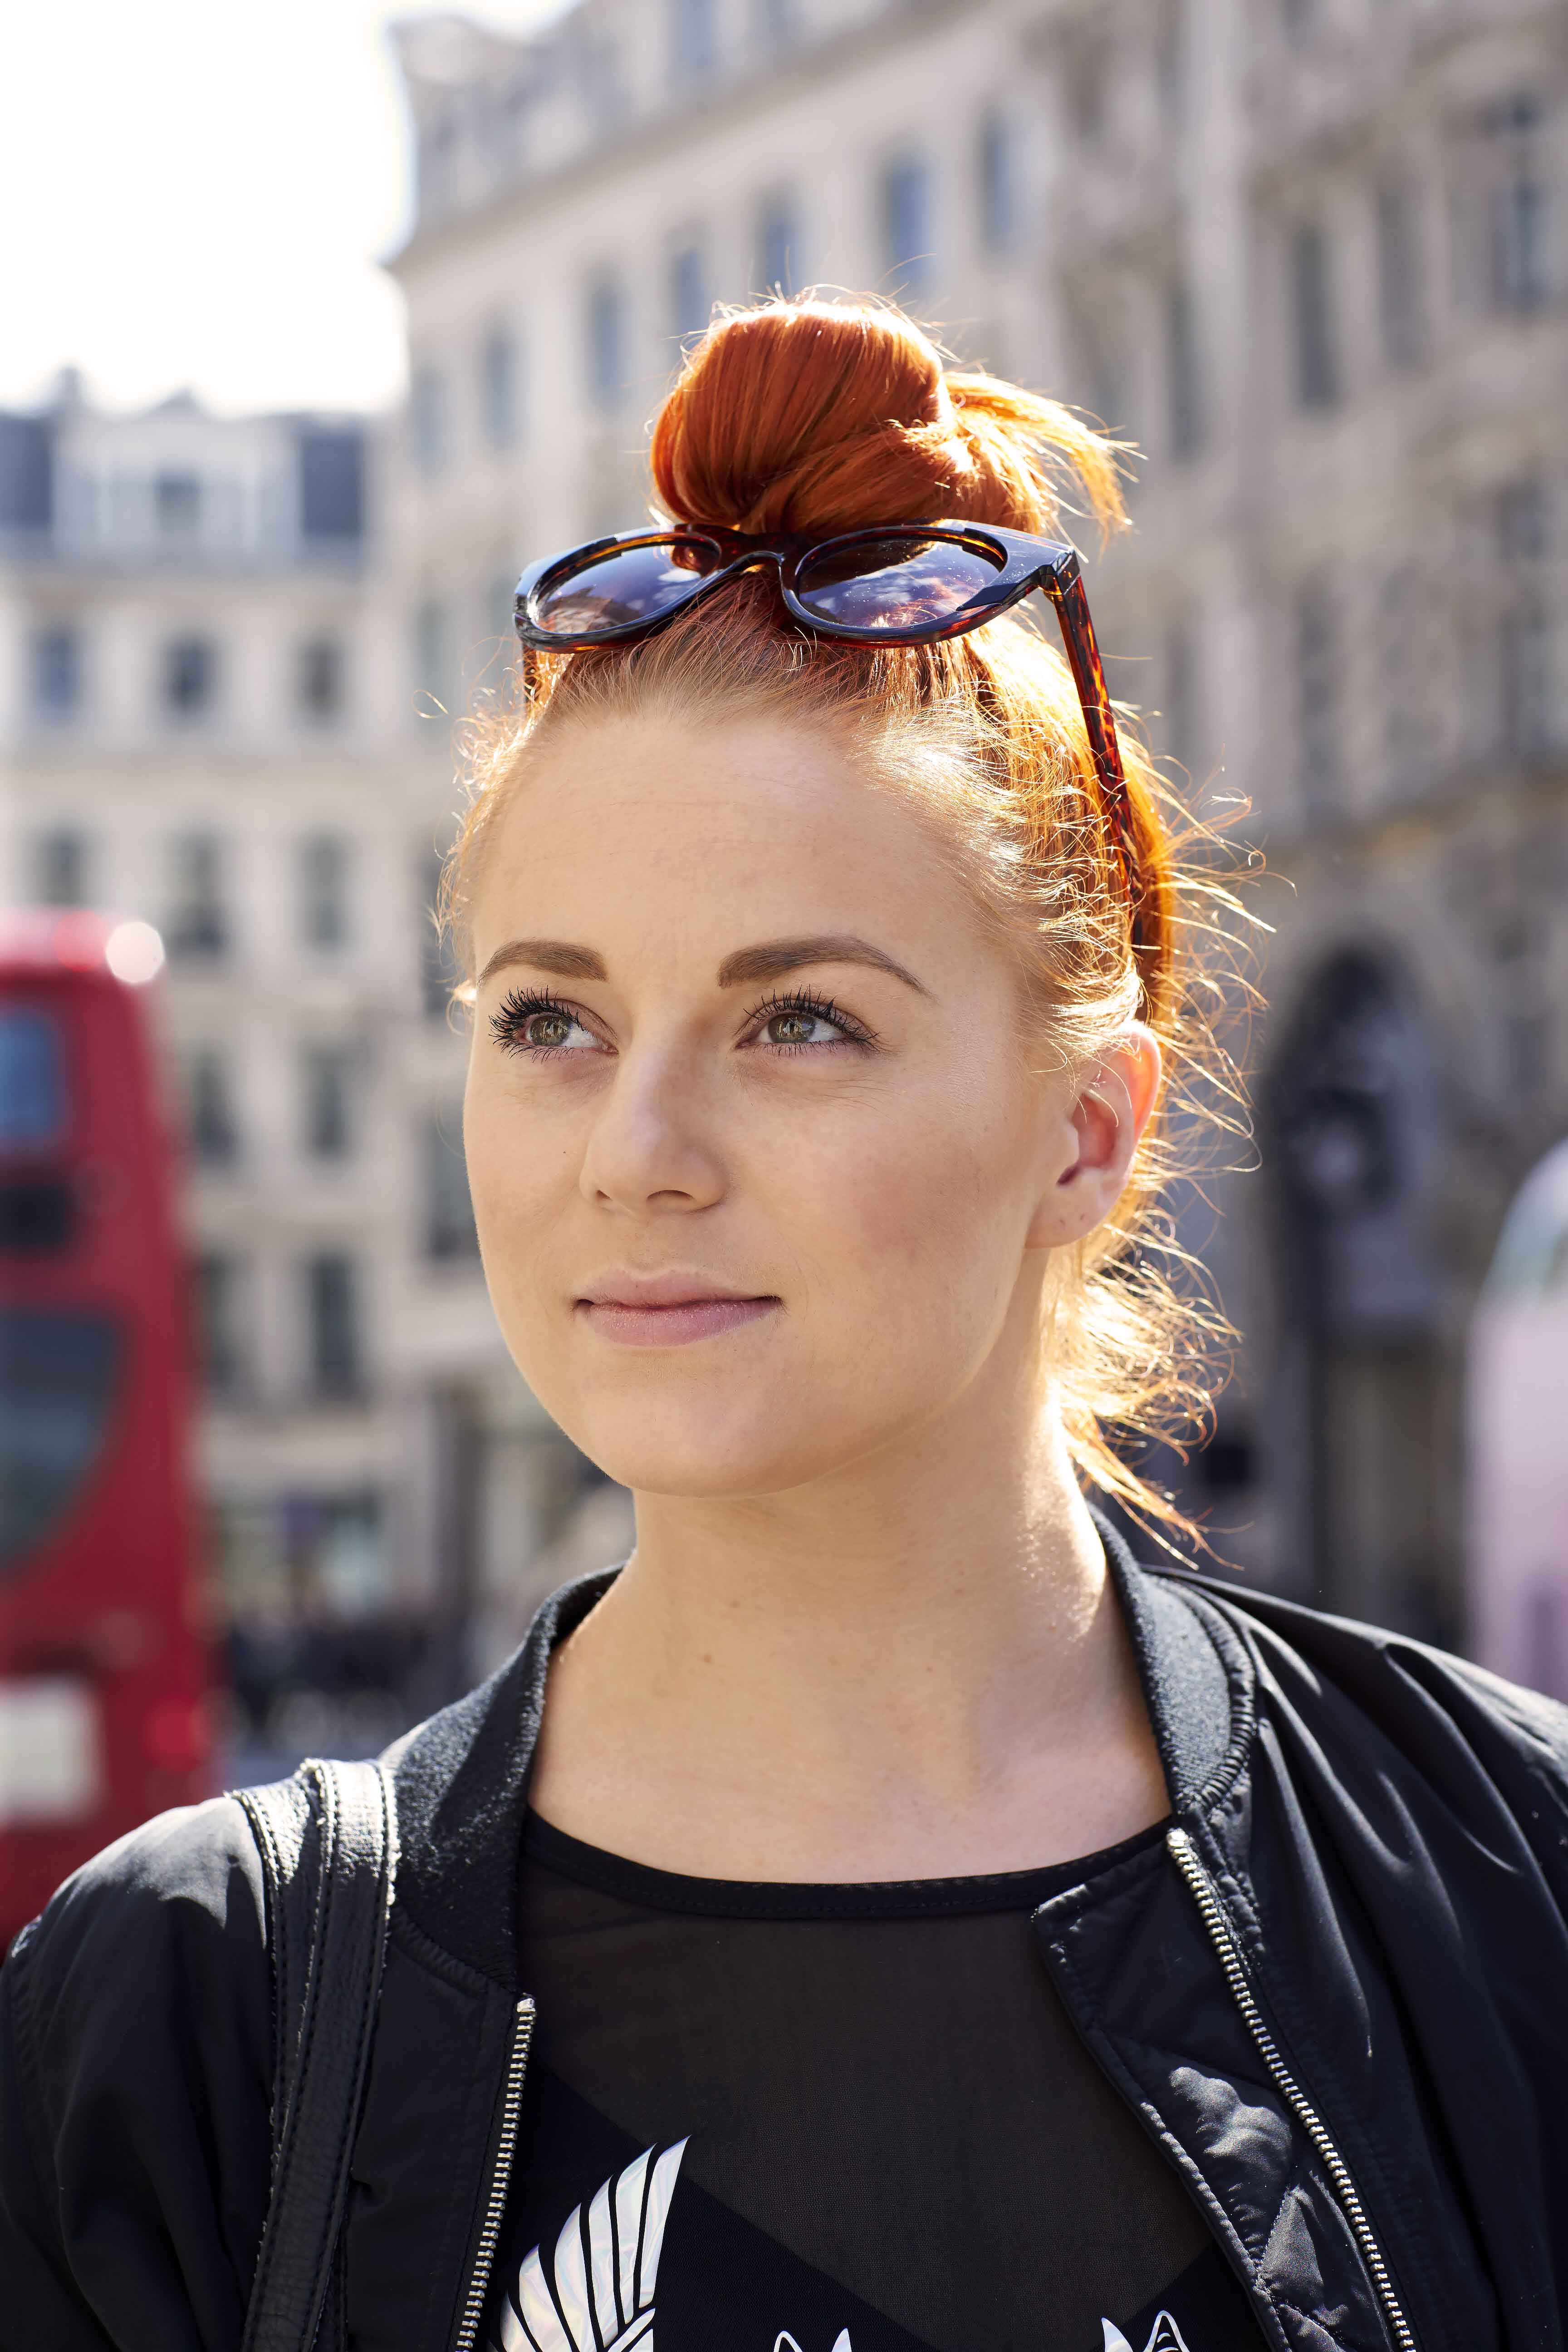 Ginger hair: cool top knot